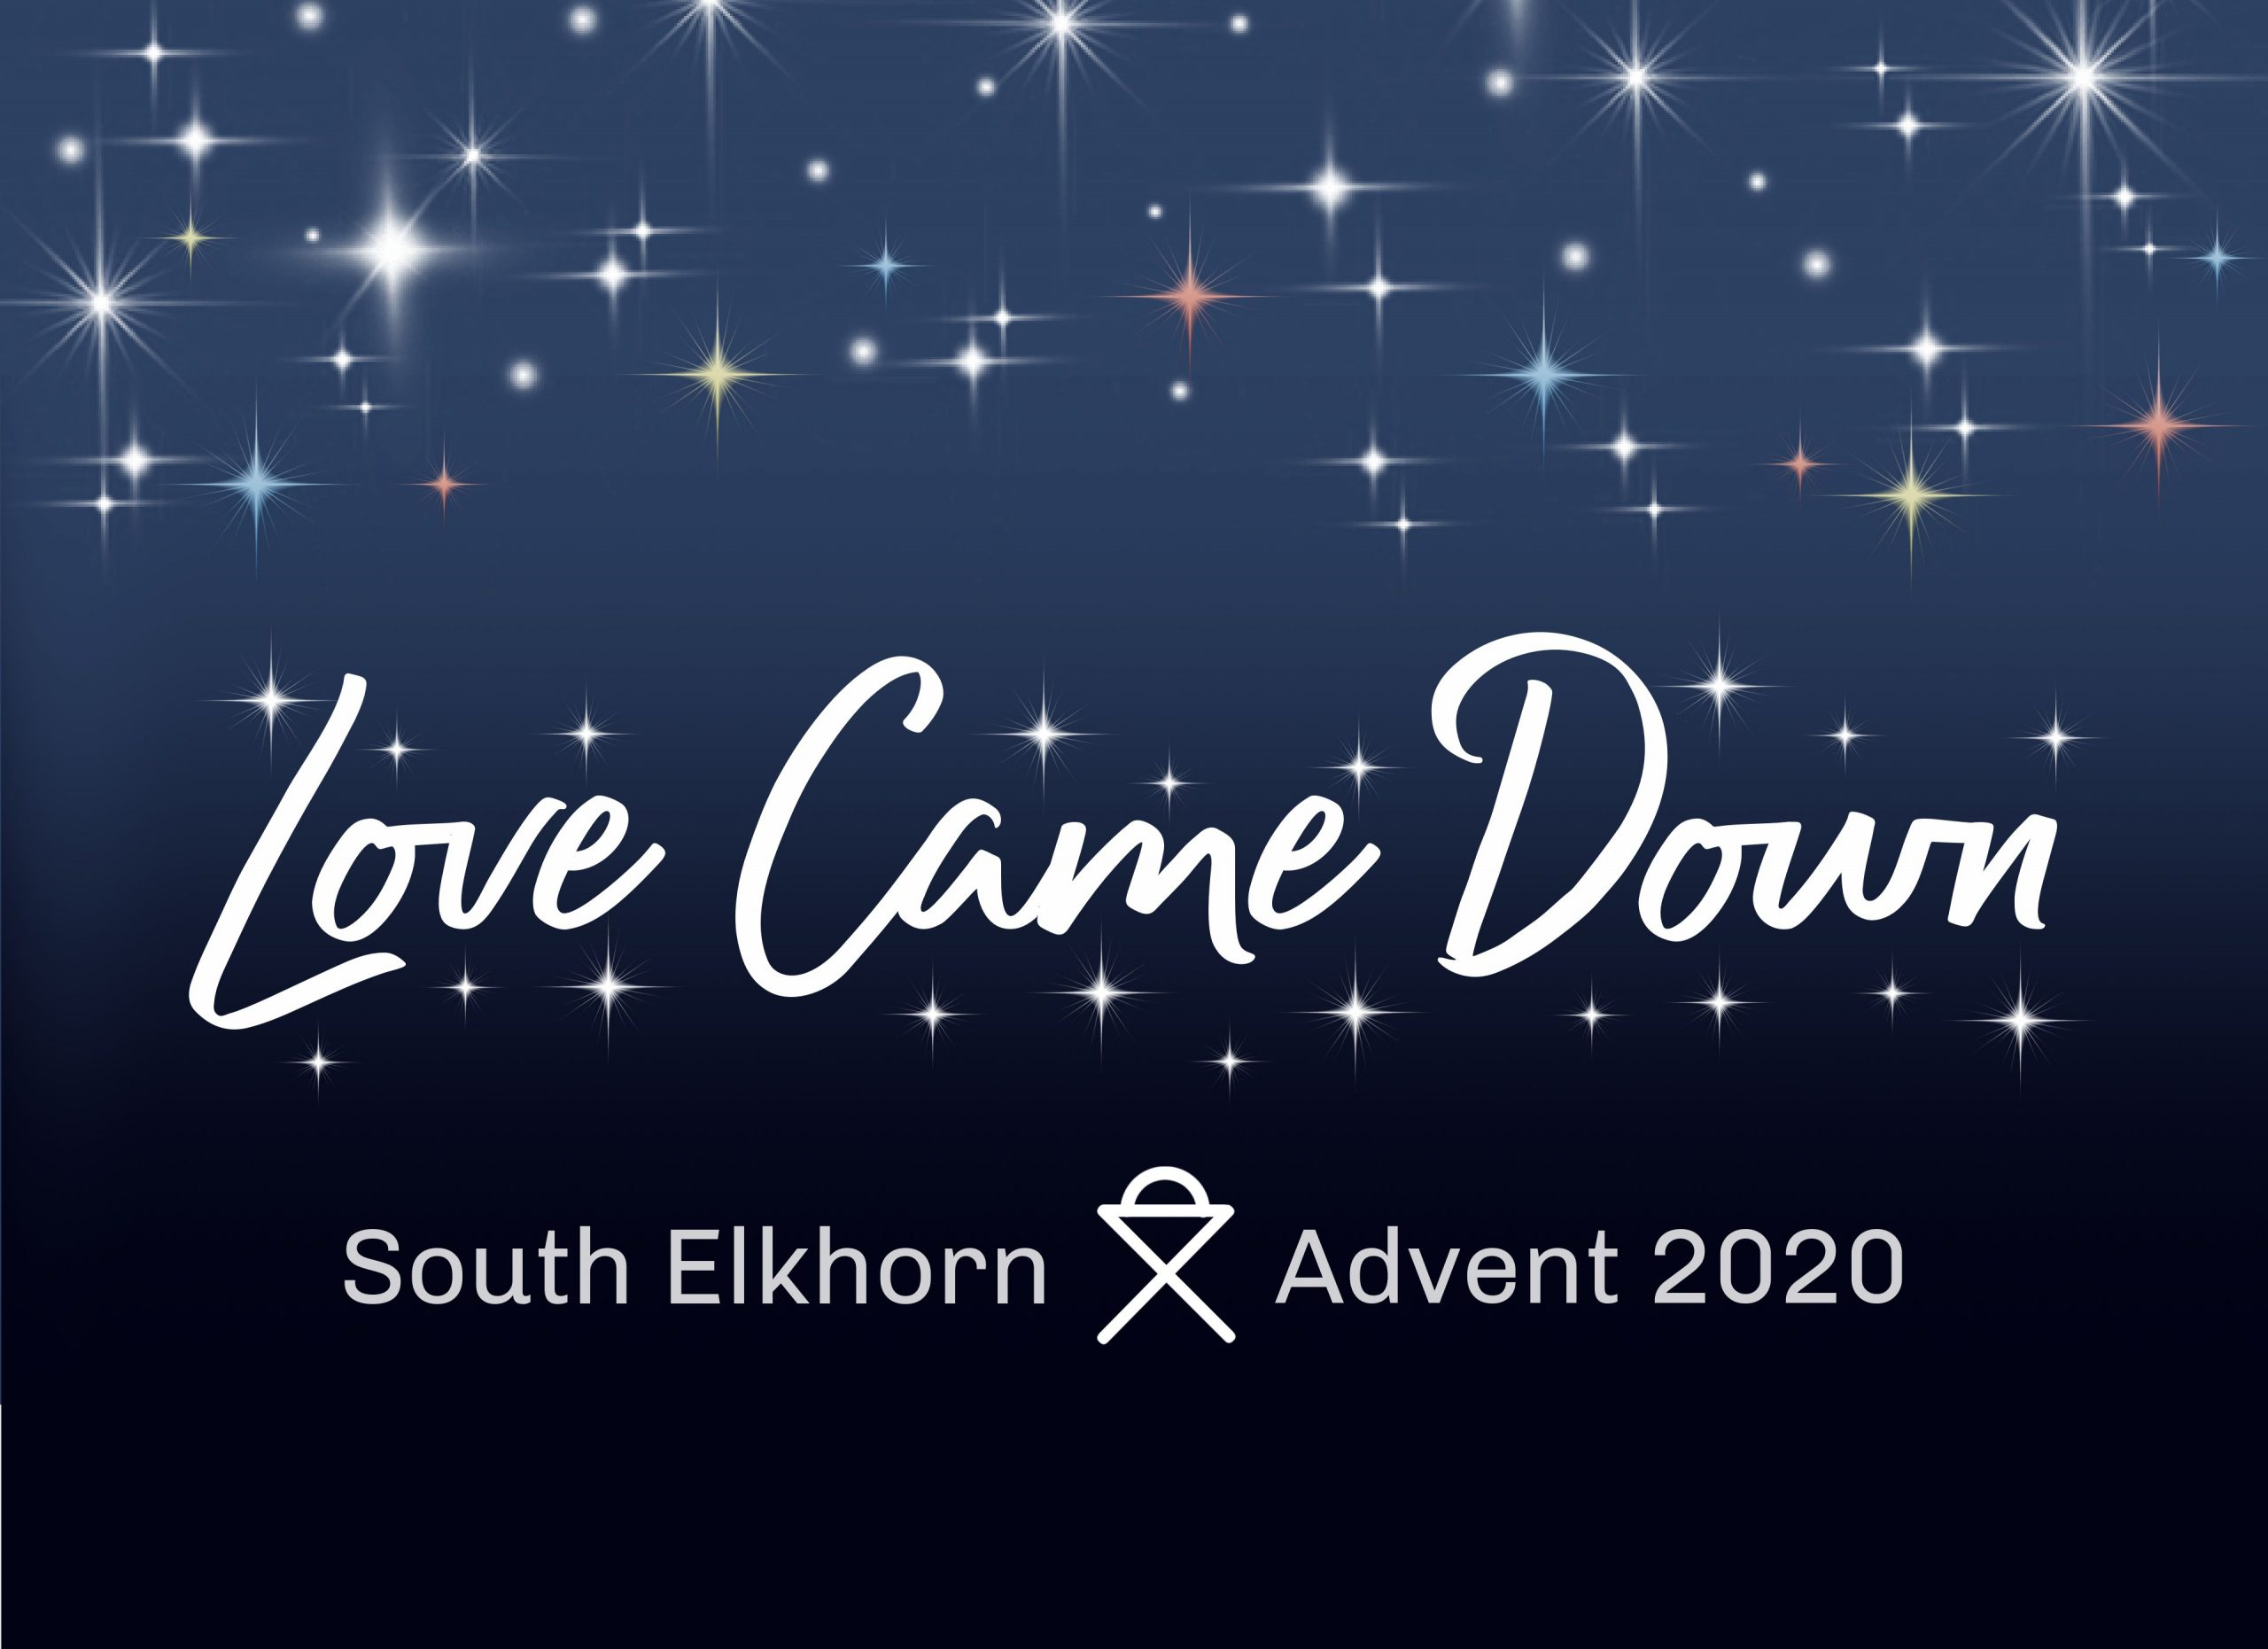 Love Came Down… To Bring Us Together